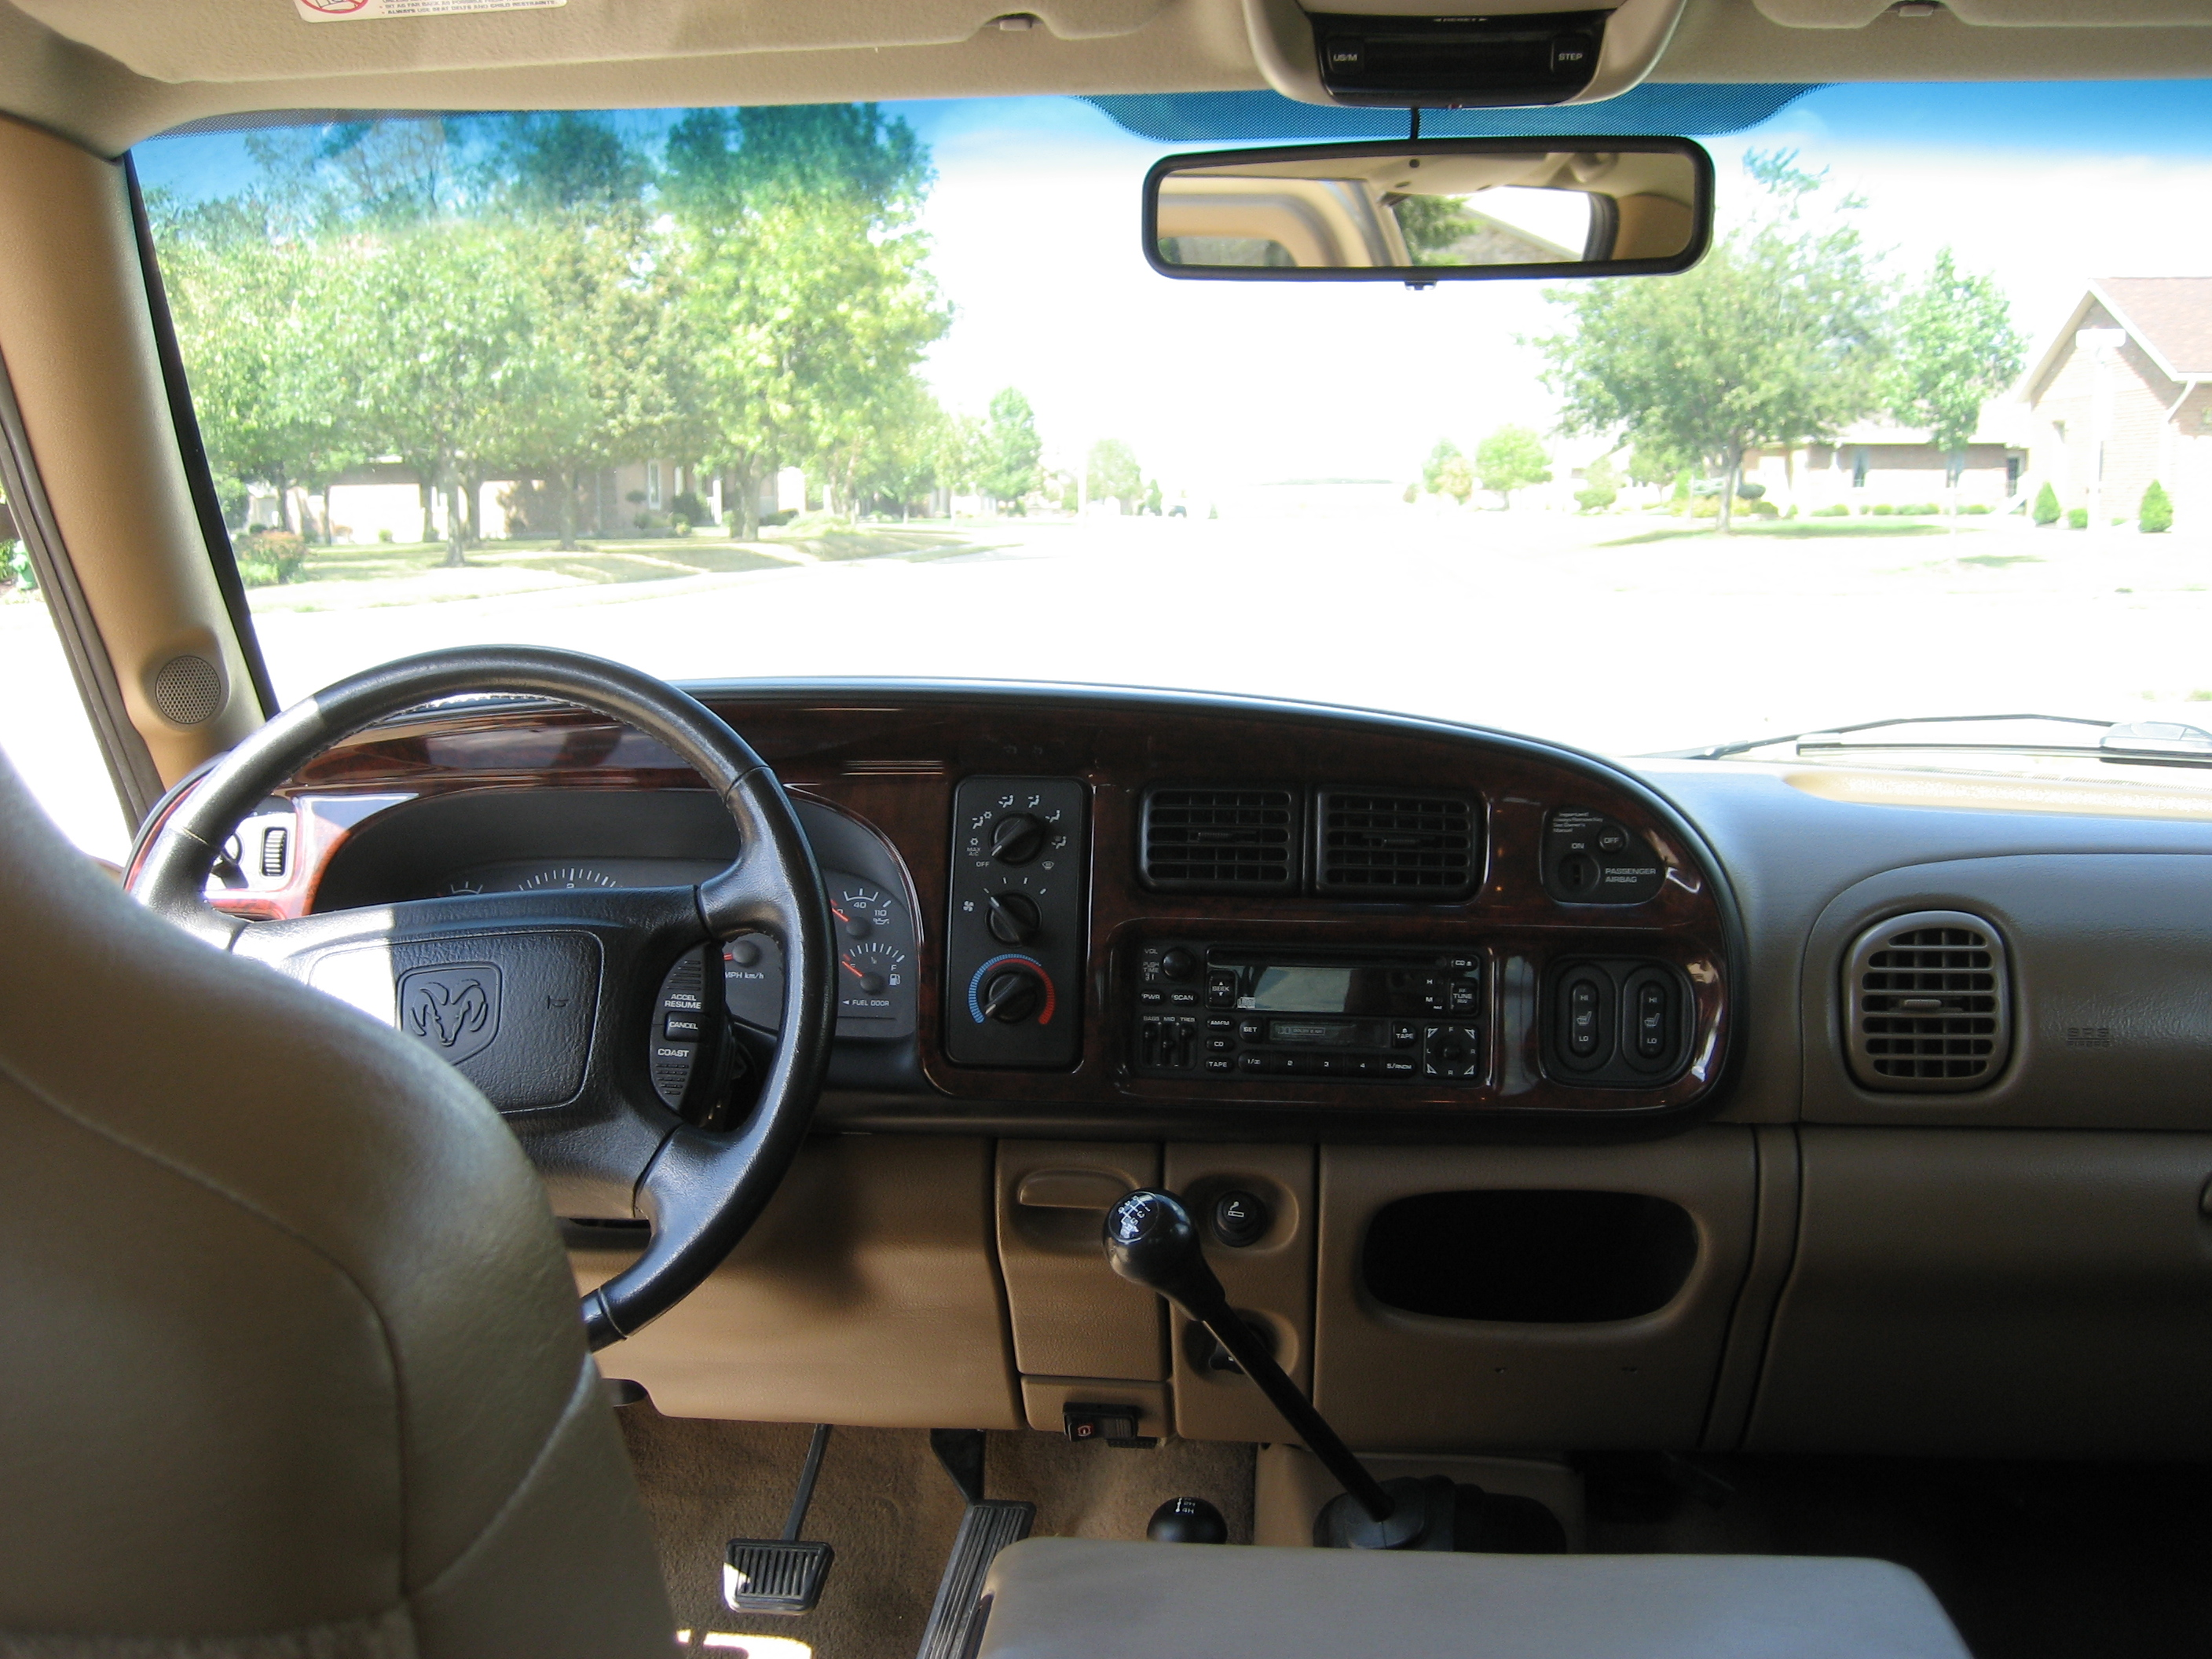 File:2002 Dodge Ram 2500 SLT Plus Package Interior.